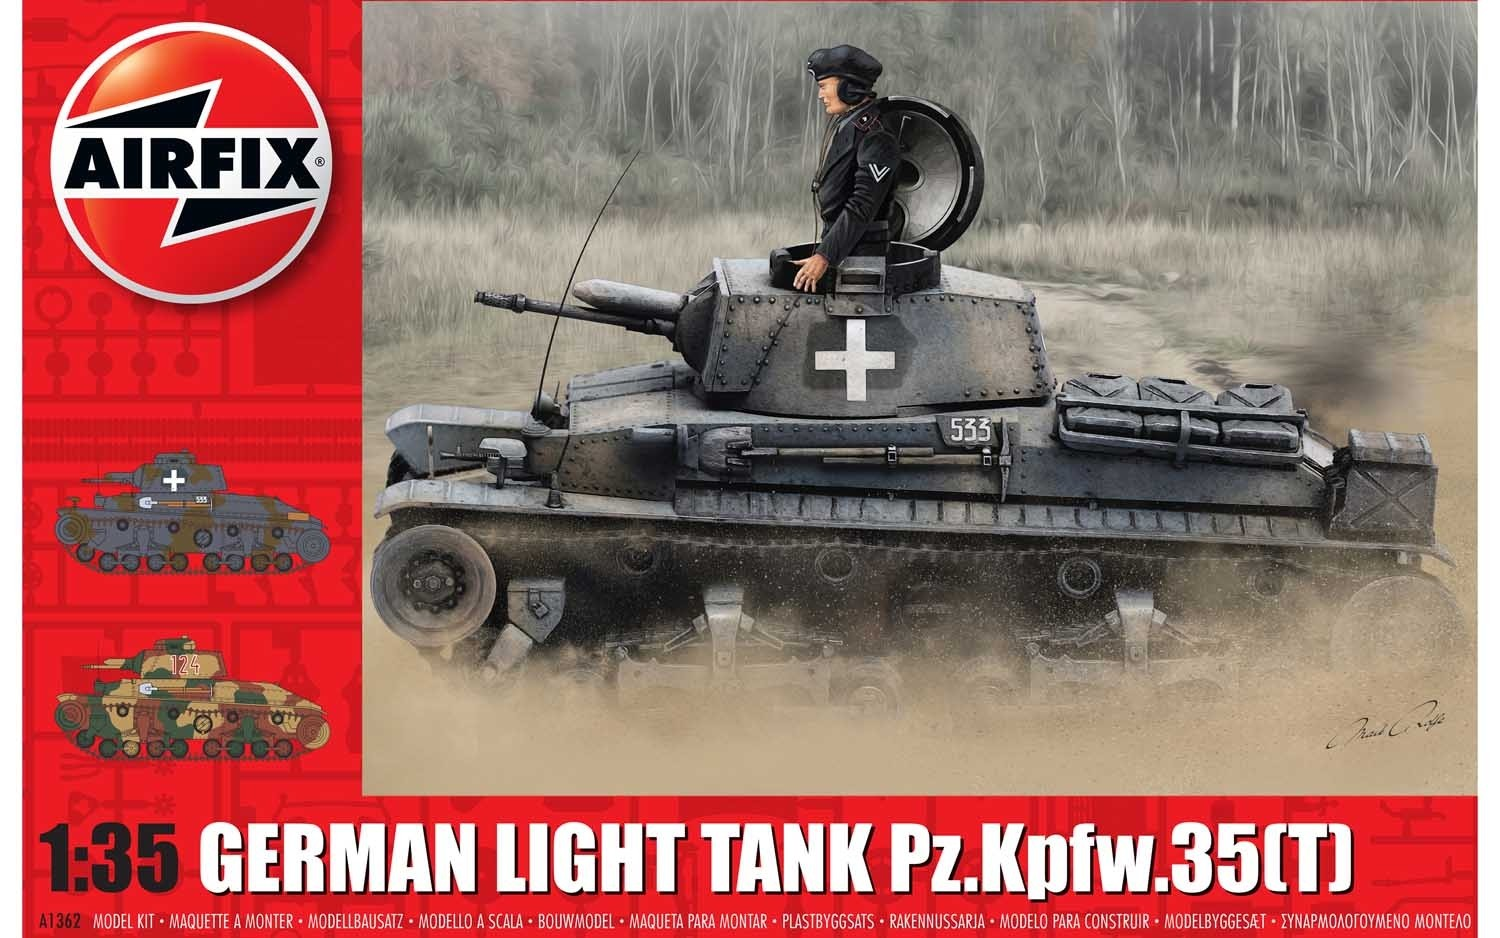 German Light Tank Pz.Kpfw.35(t)